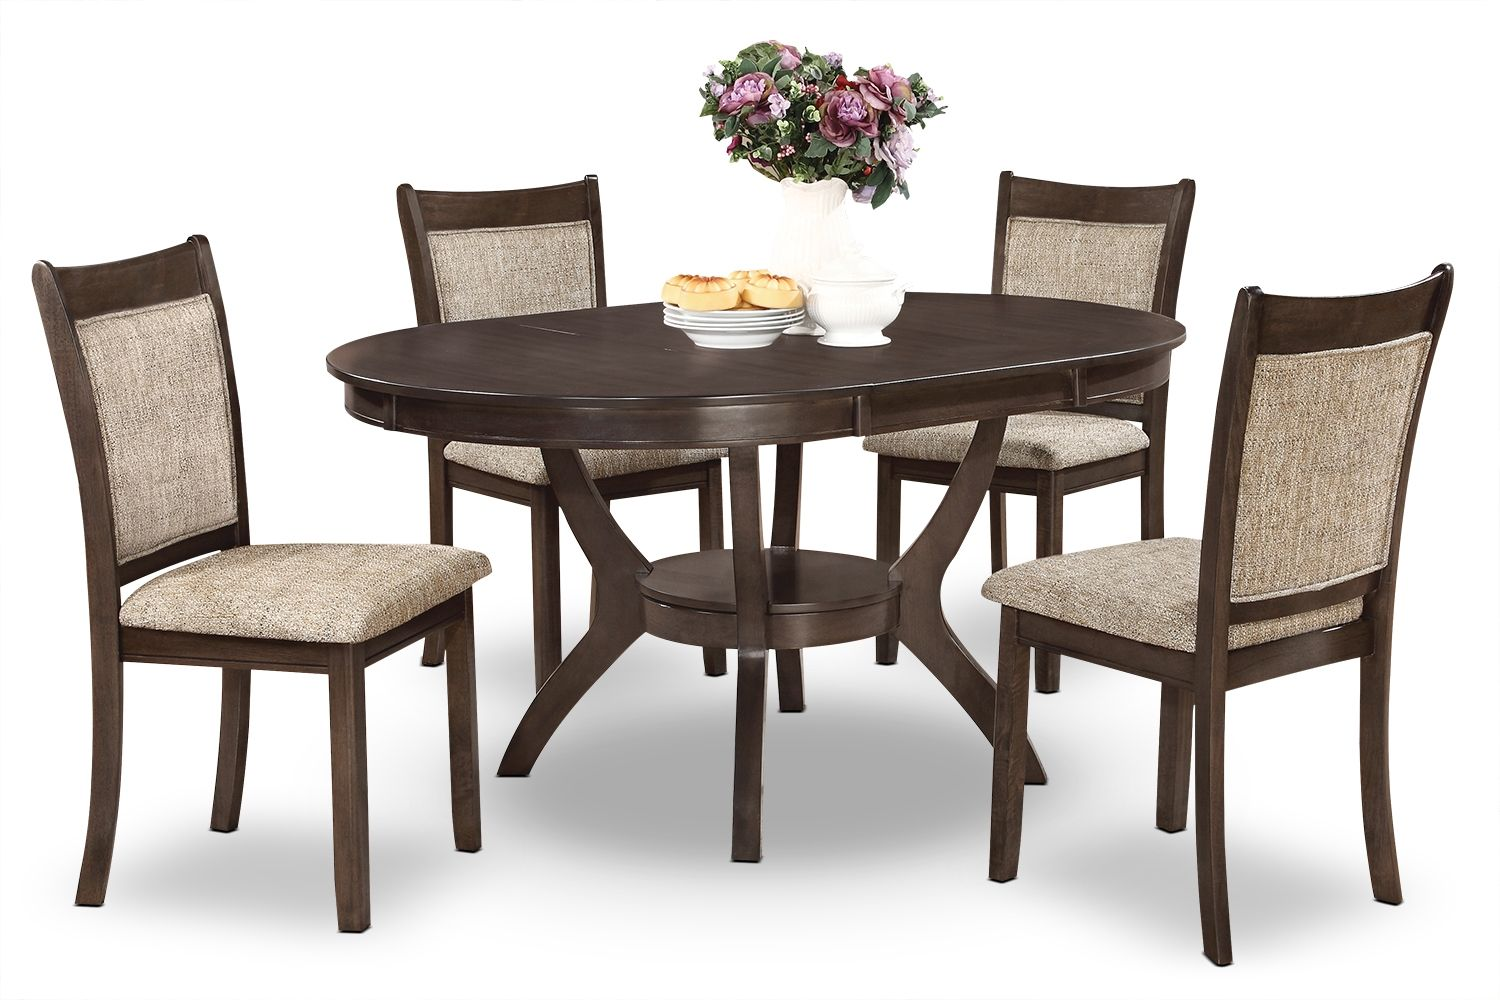 Adell 5Piece Dining Package  Browngrey  The Brick  Decor Prepossessing Dining Room Accent Pieces Inspiration